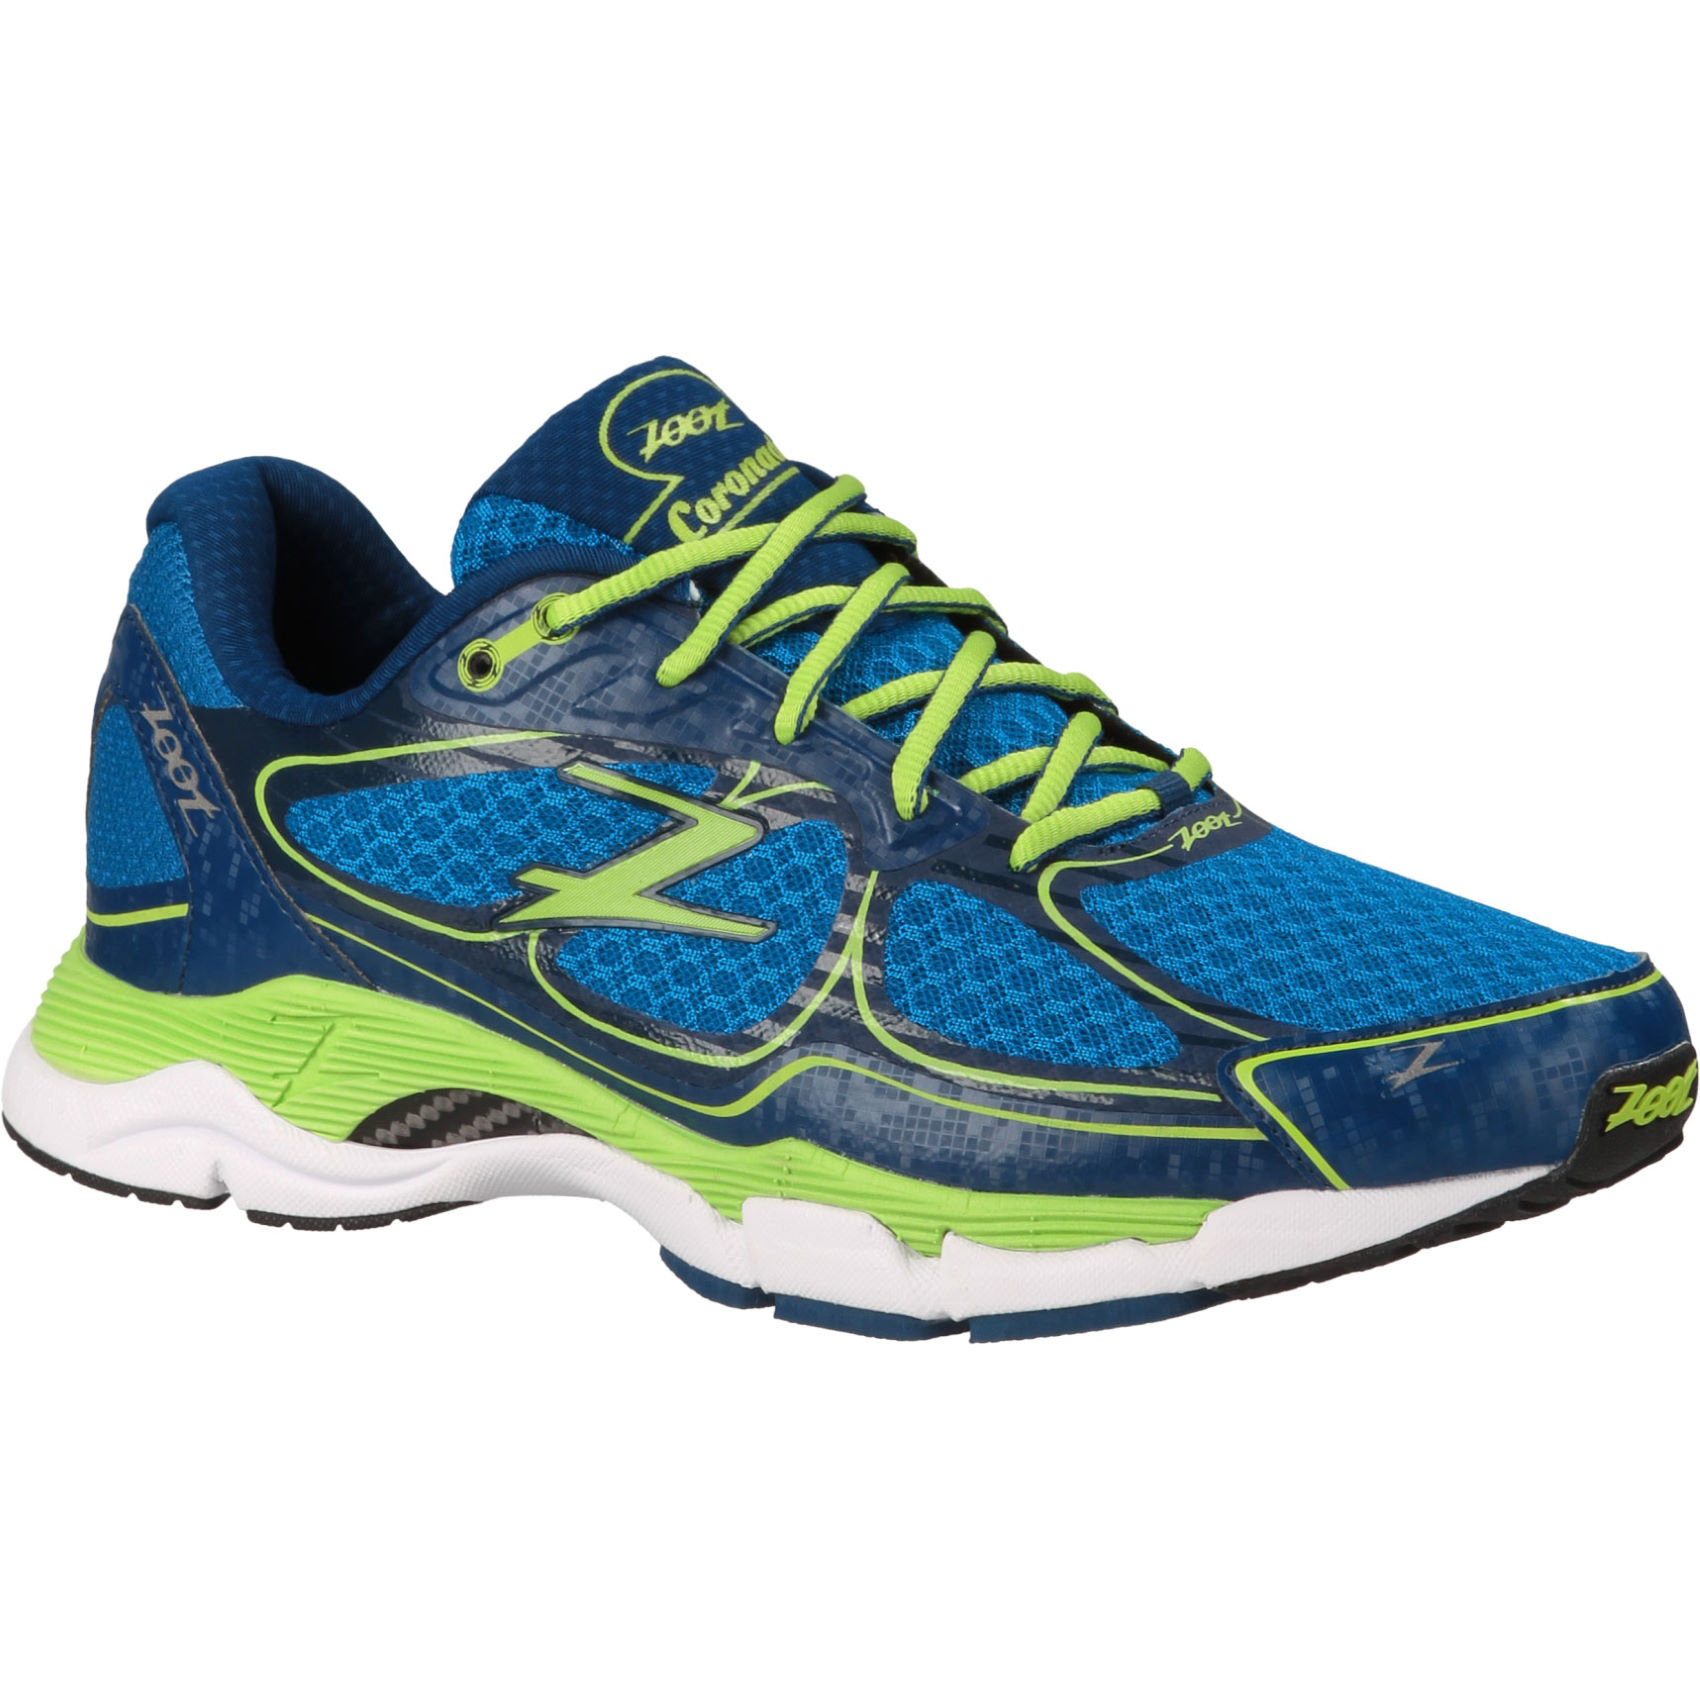 Zoot Stability Running Shoes 98